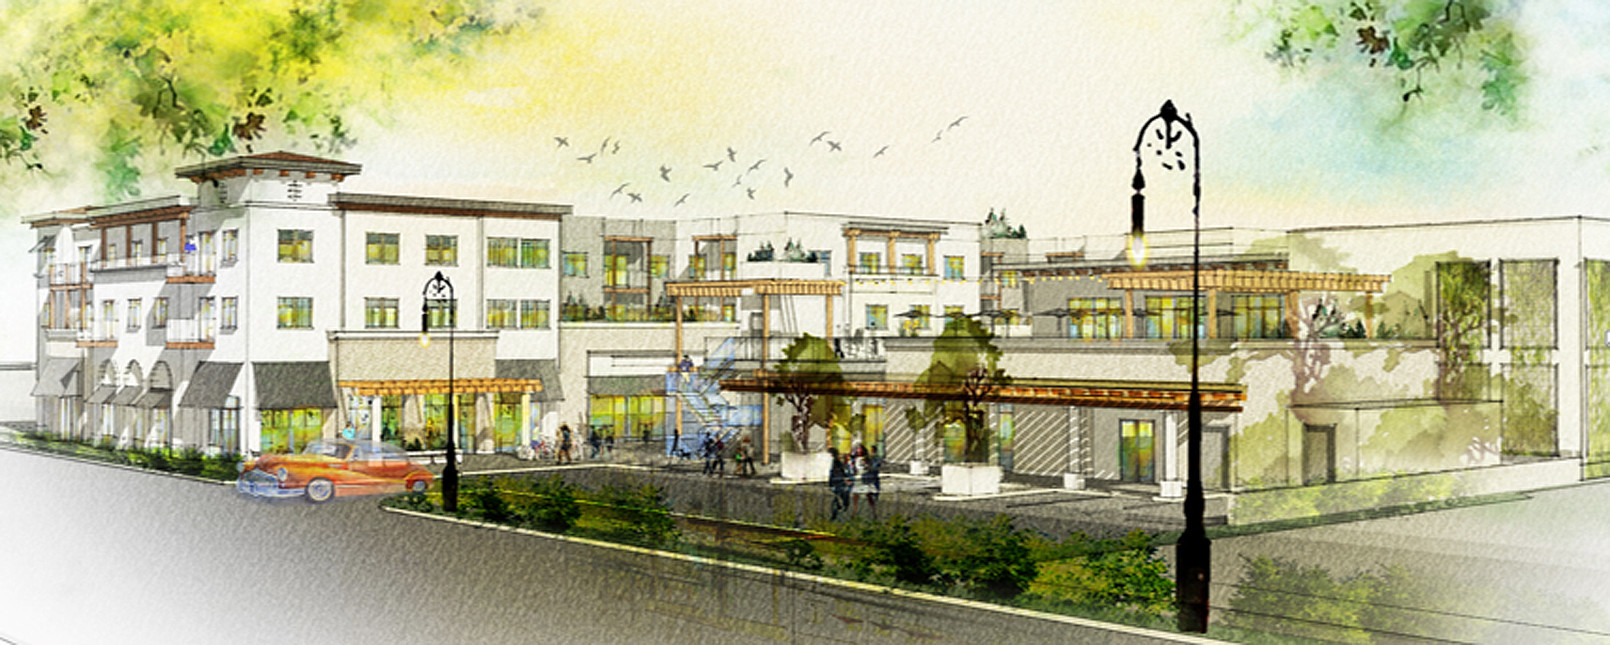 "Revised drawing shows ""The Trading Post"" development along Poway Road."